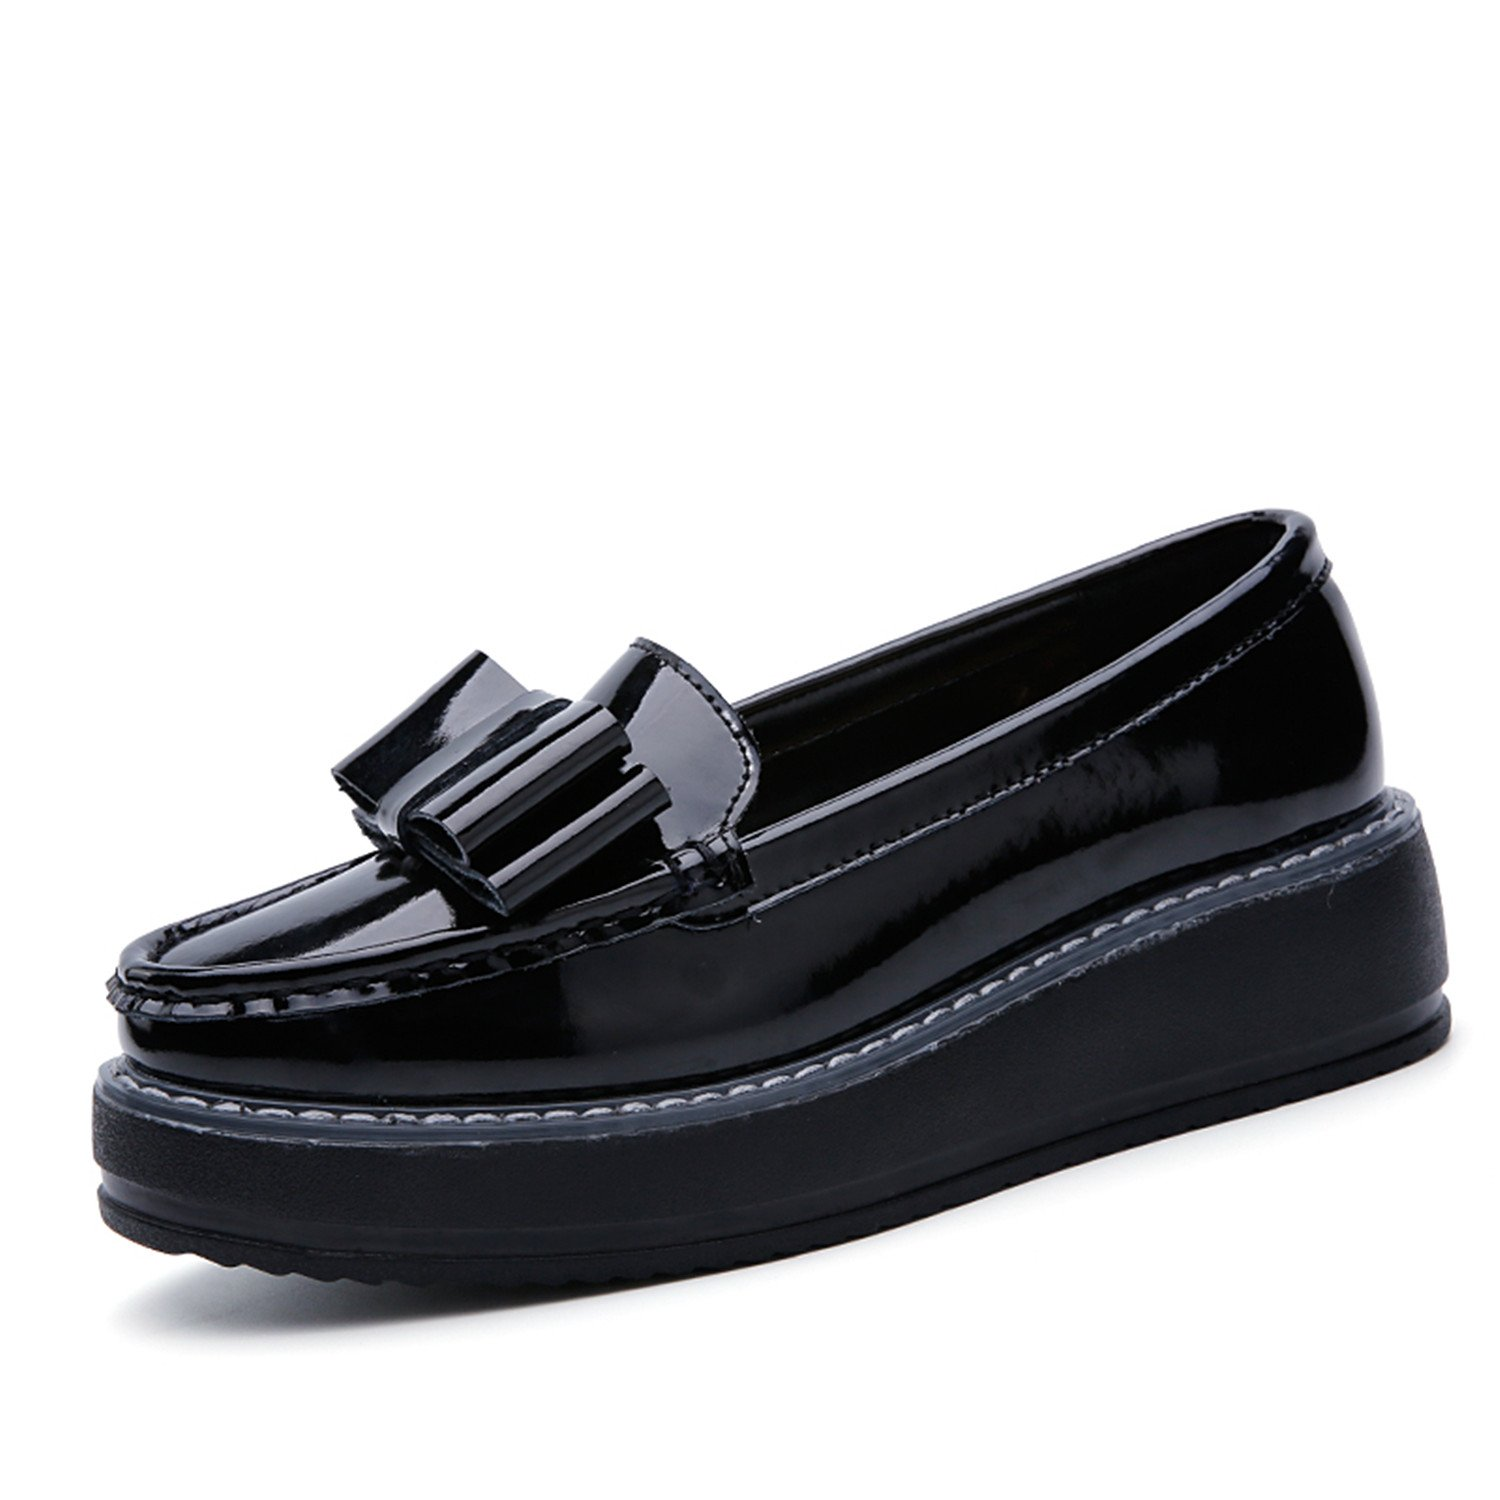 60439846fb6e Suppliesed Women Flats Shoes Woman Black Patent Leather Slip on Bow-Knot  Casual Loafers Women s Low Bow Flat Platform Shoes